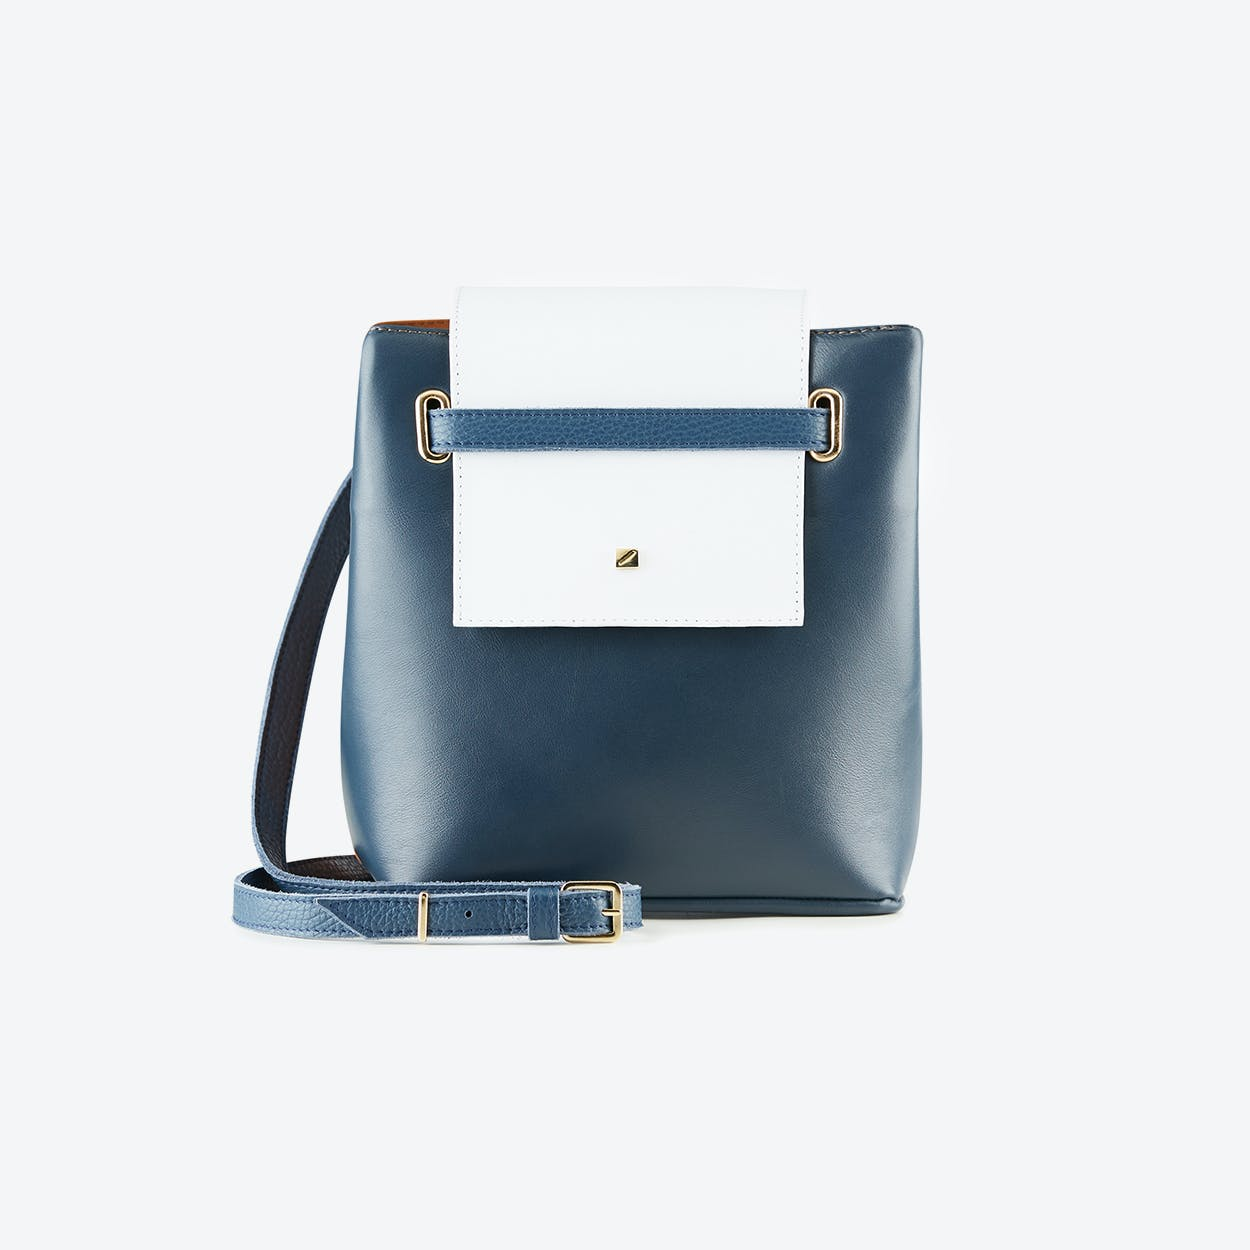 Mini Bucket Bag Indigo in Navy Blue and Brown Leather